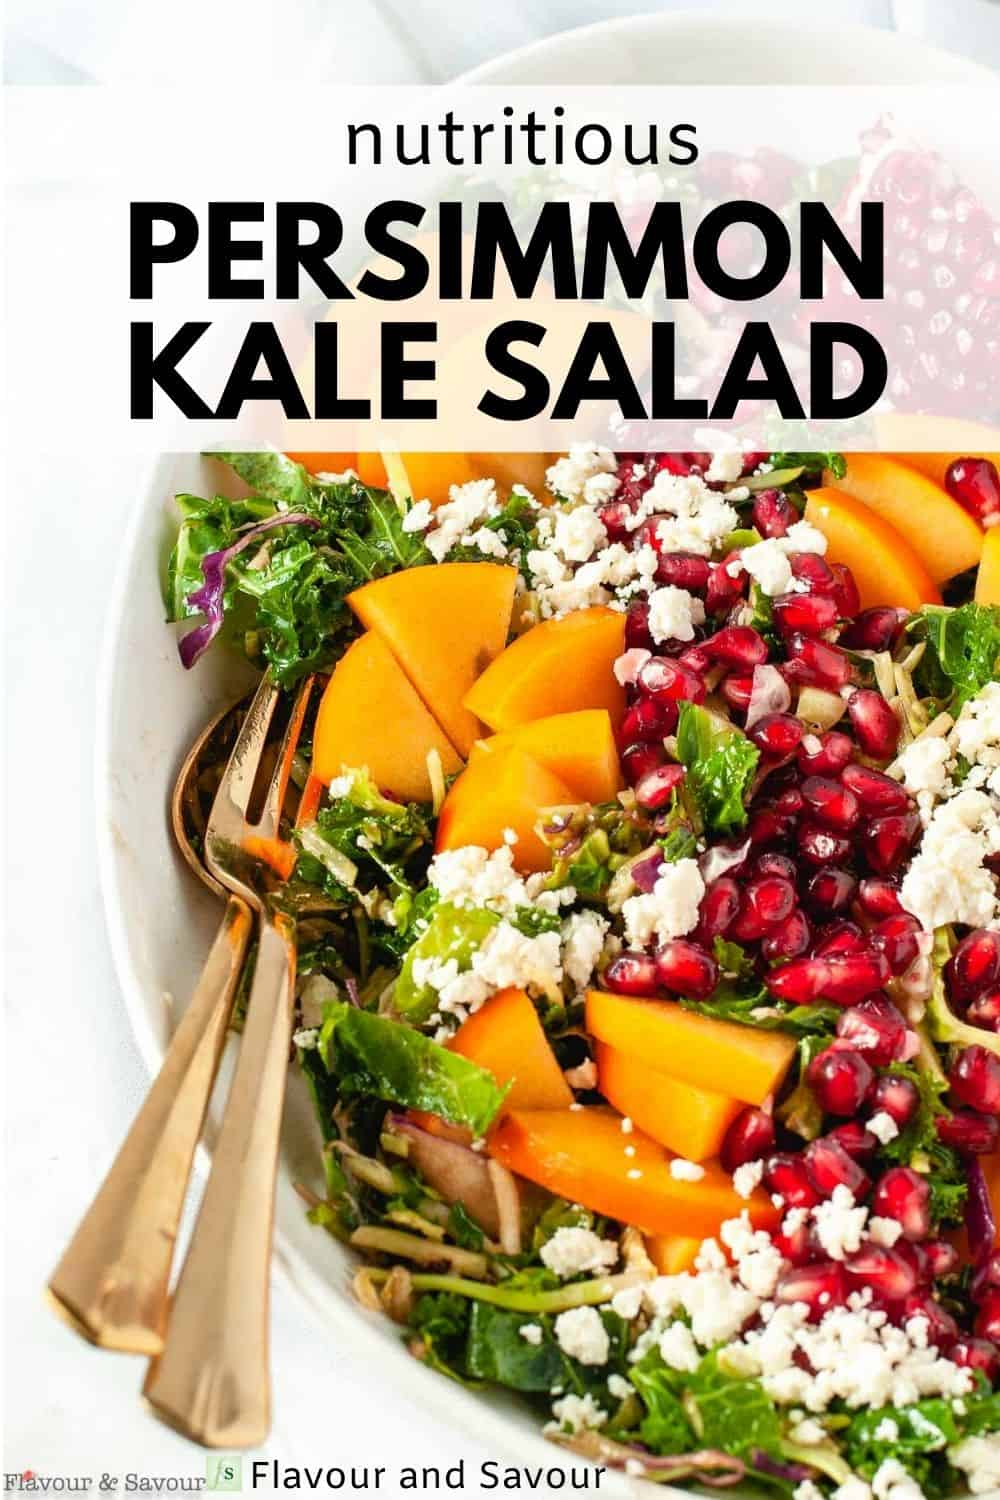 text and image for nutritious Persimmon Kale Salad